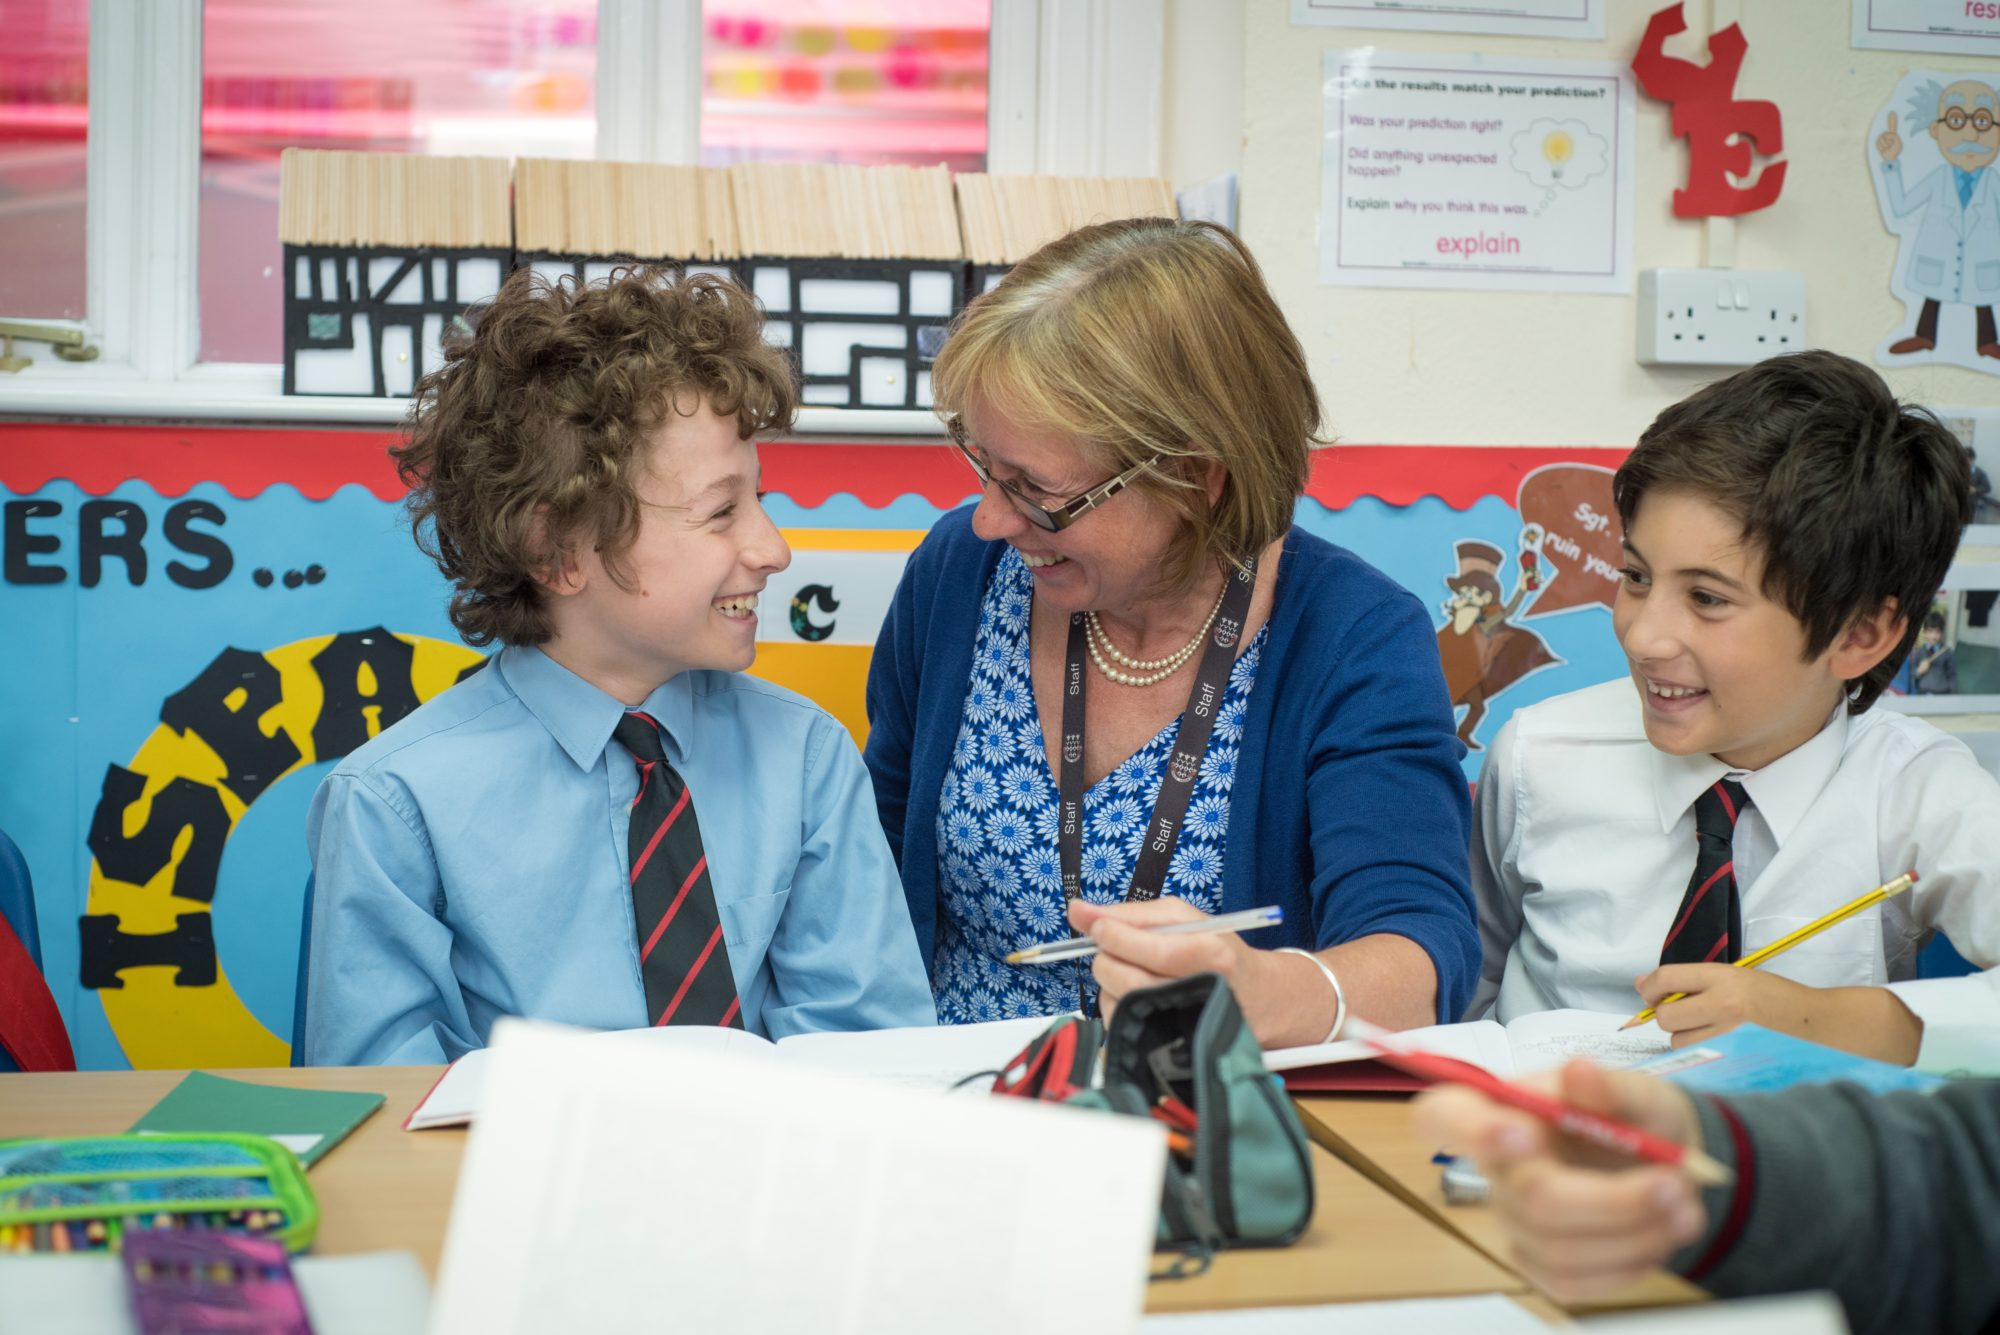 Magdalen College Junior School pupils learning in classroom with teacher